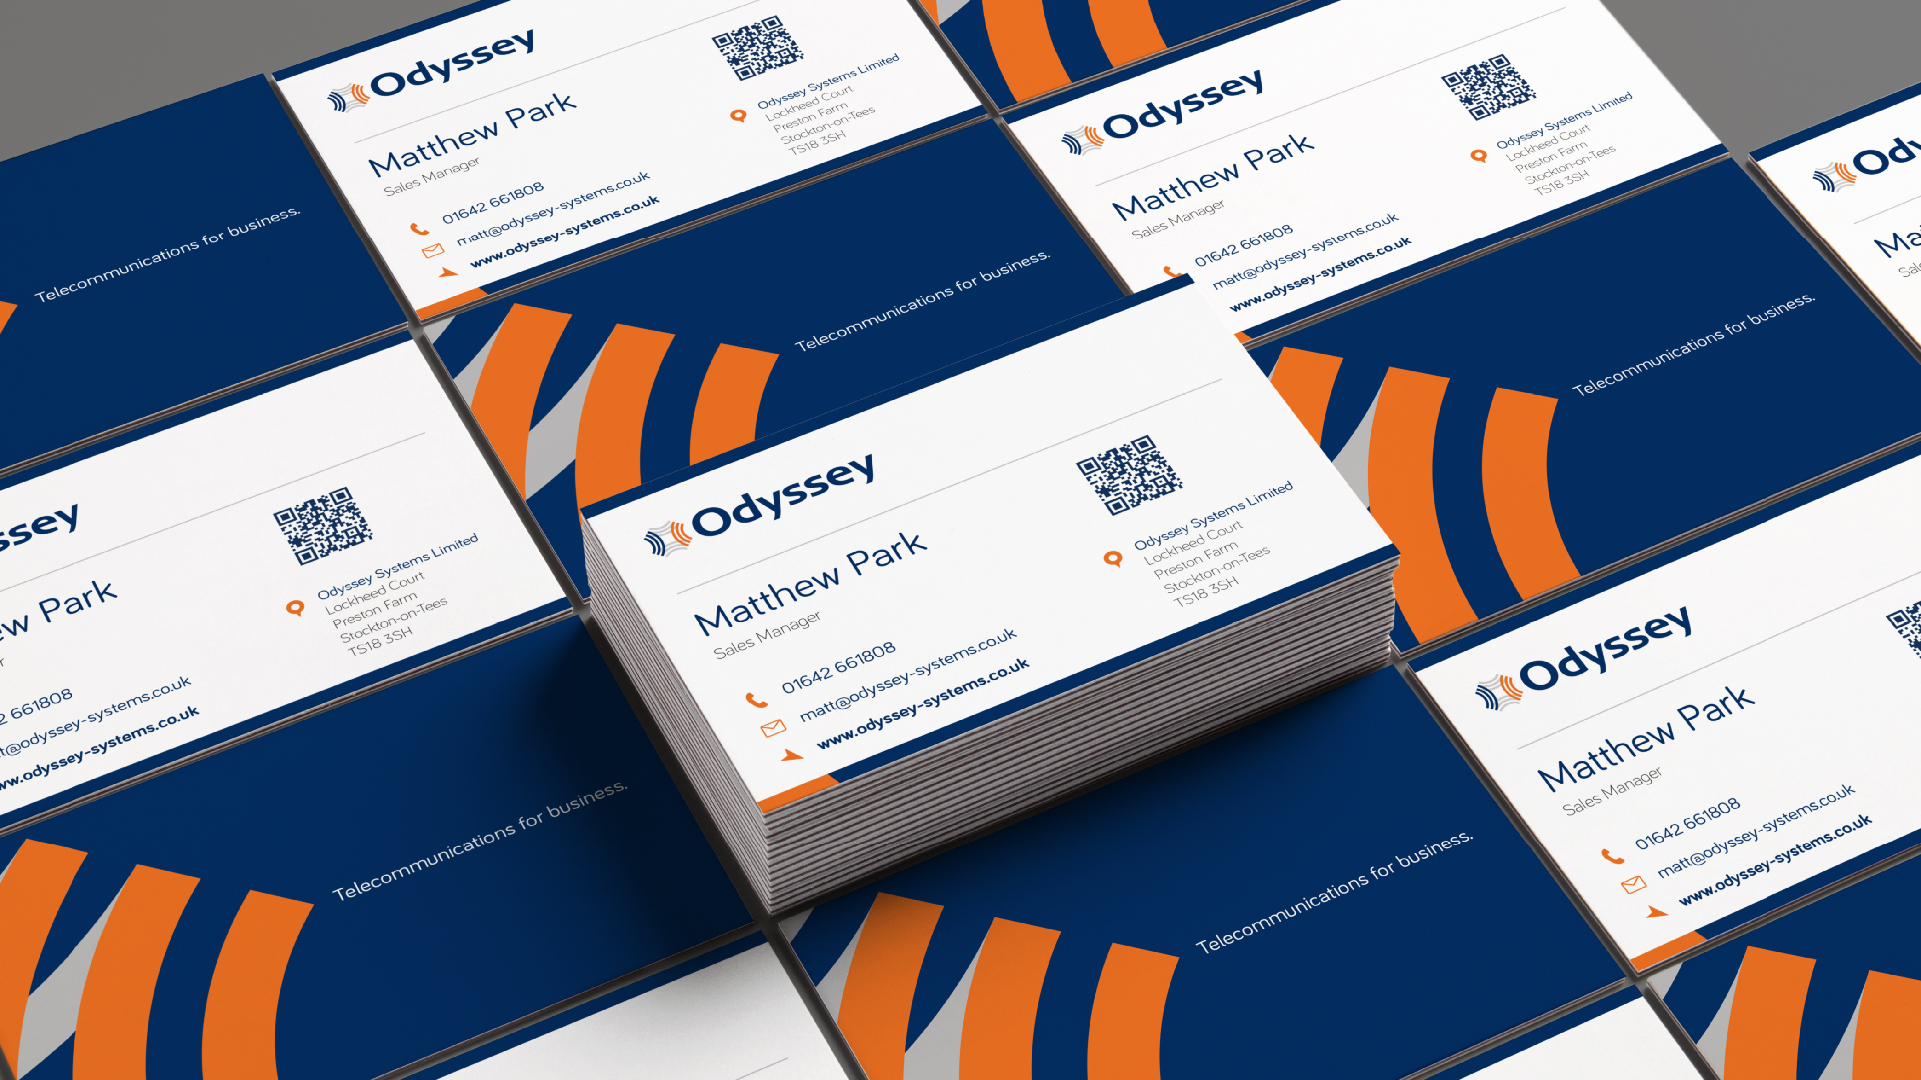 Odyssey - BetterBrandBuilder™ DELIVER - Corporate Stationery